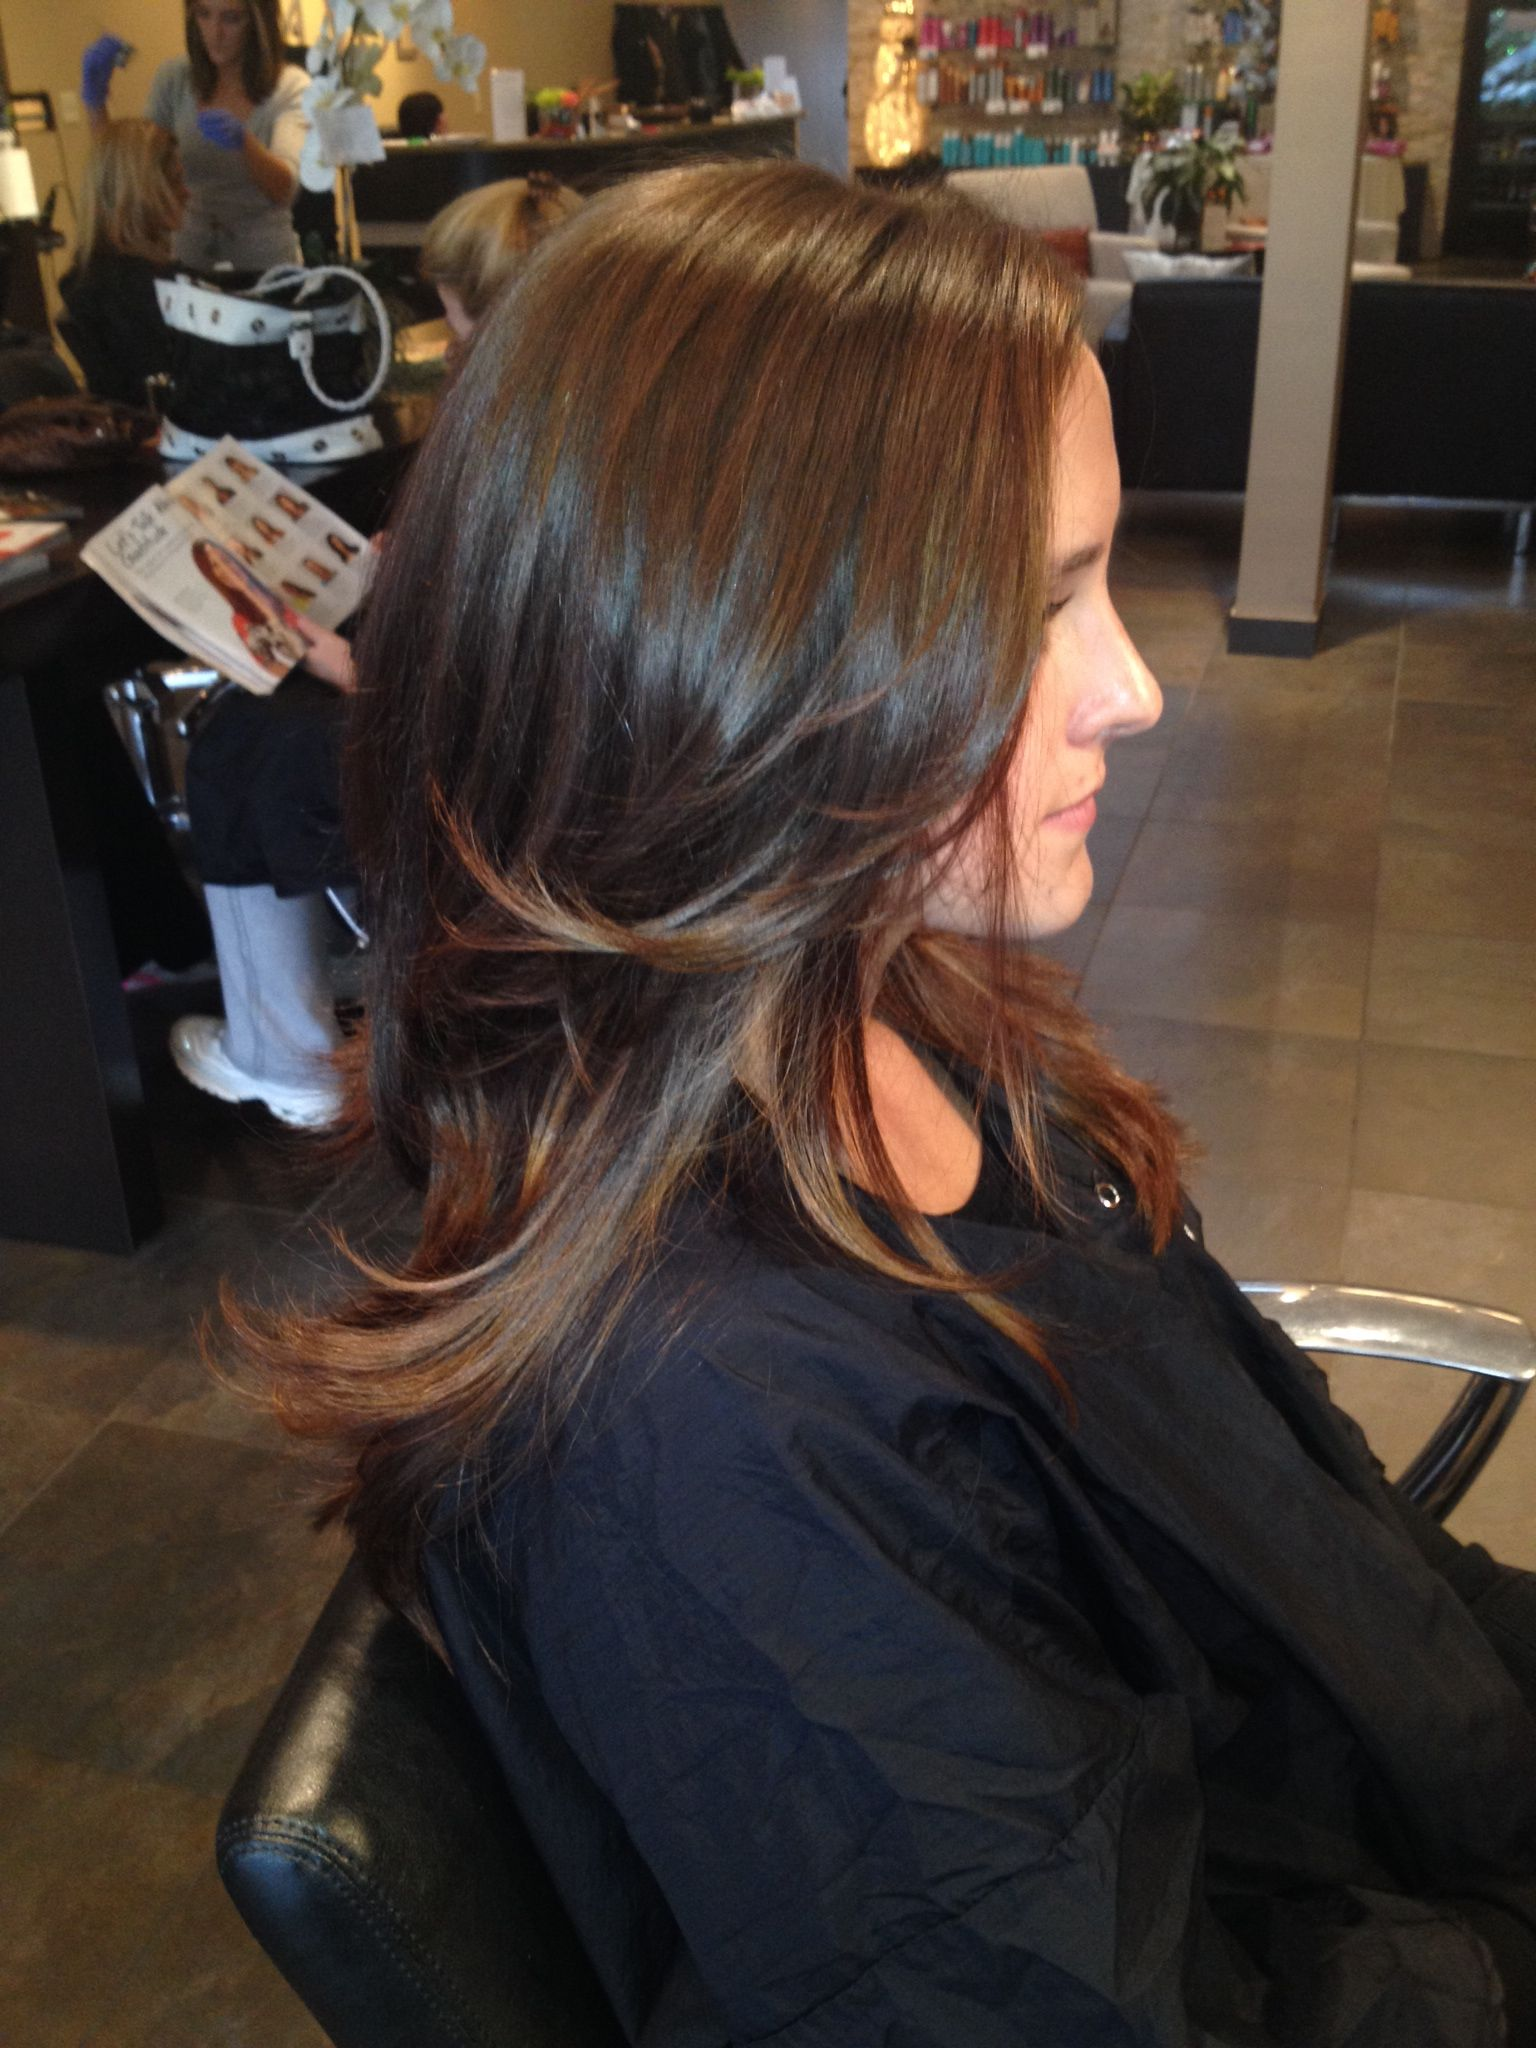 Redken Color Natural Highlights Balayage 7nb Shades Brunette With Toffee High Lights